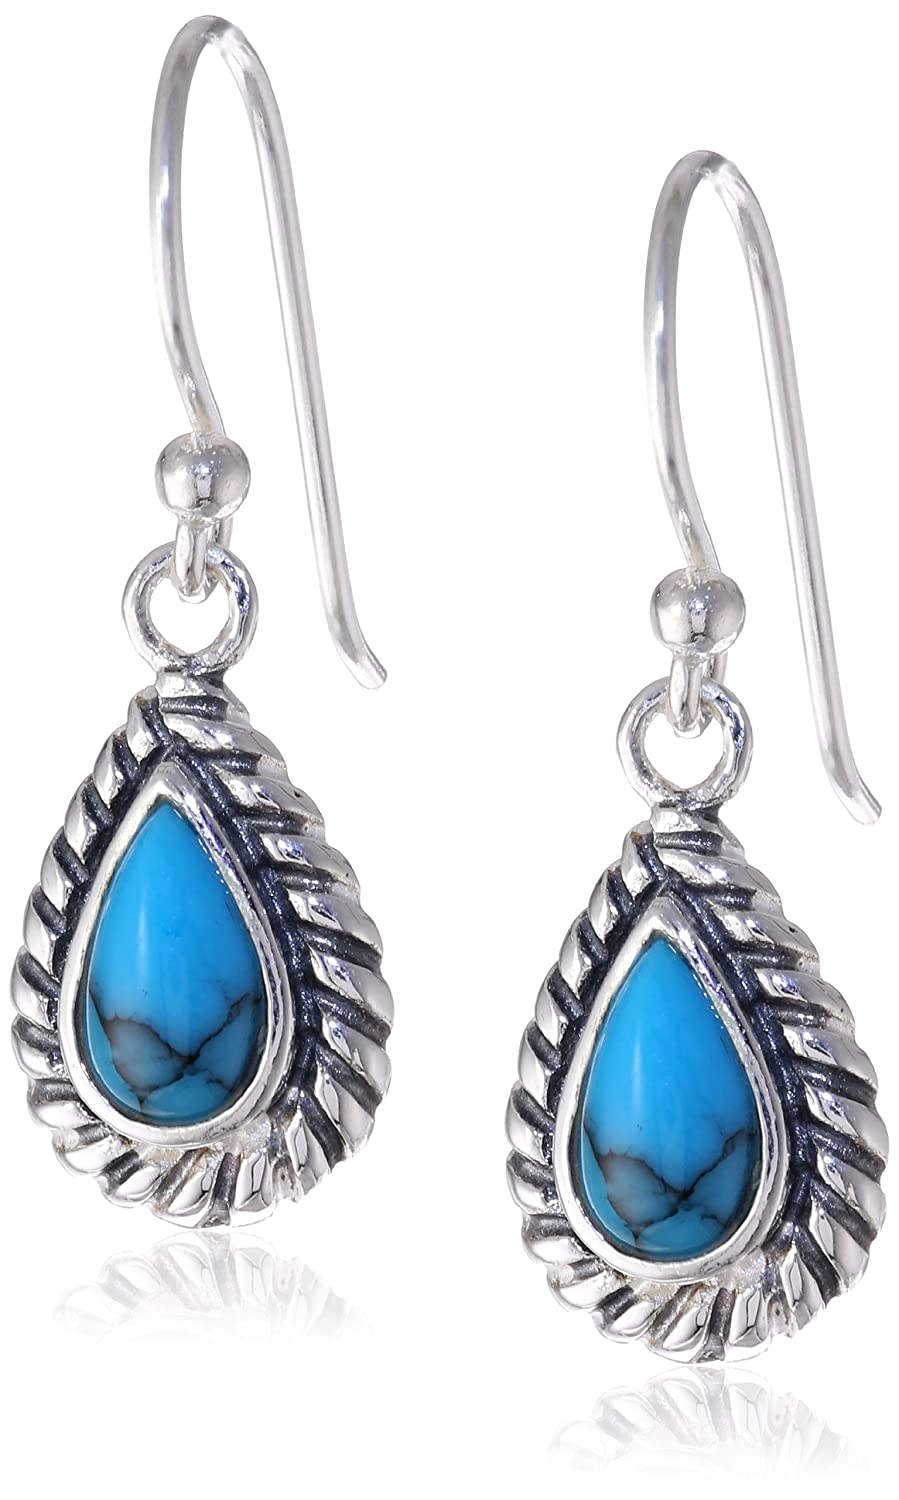 chic handmade turquoise earrings home